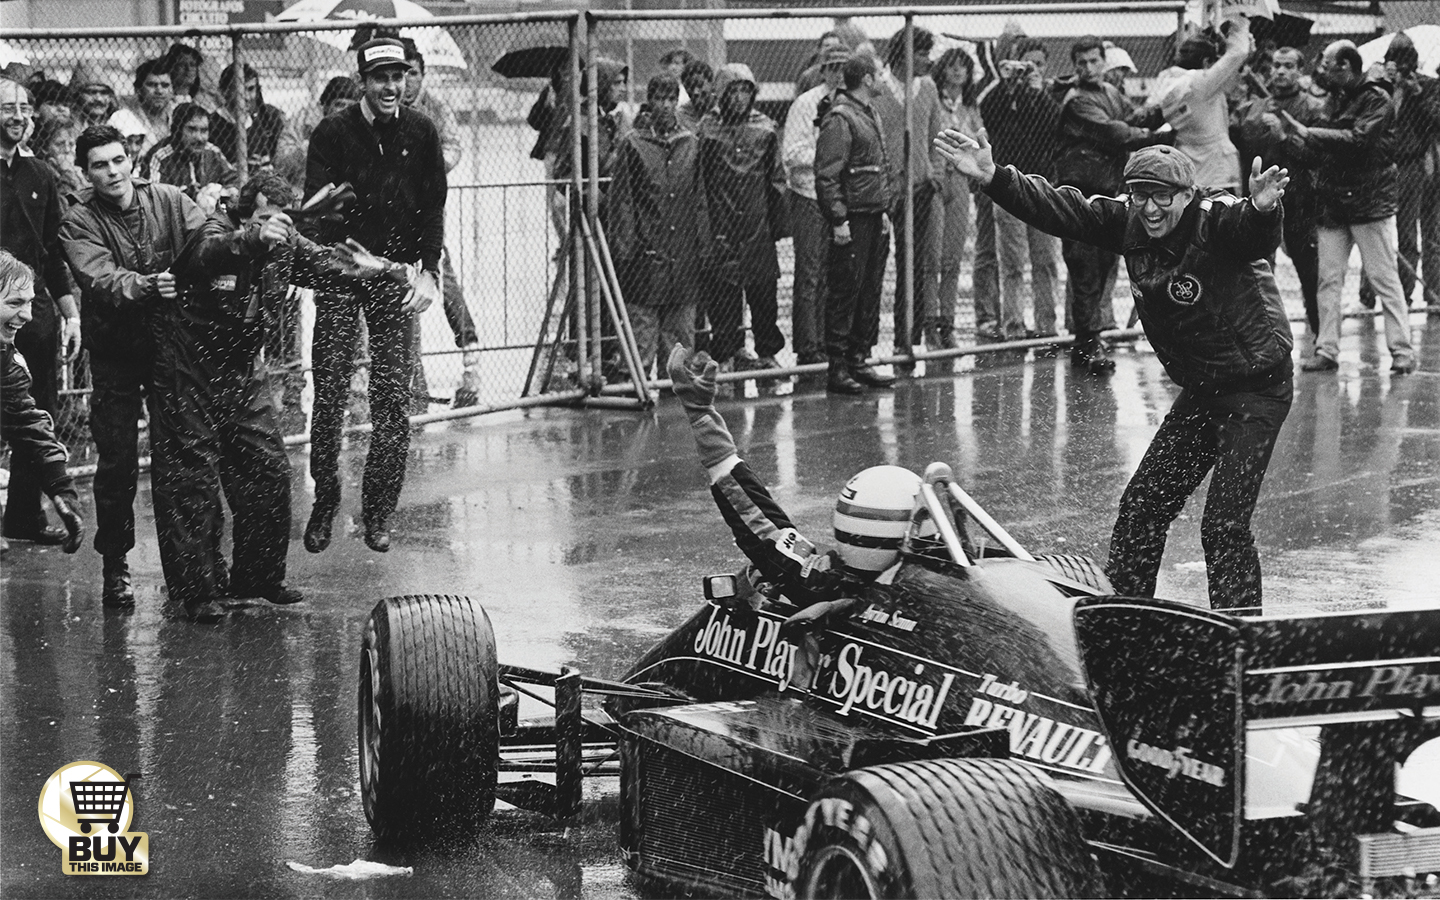 12 1985 Portuguese Gp Motor Sport Magazine Grand Prix Starting Lights Nowadays Youd Have A Safety Car Start But This Was Senna Took Off At The Green Light Settled Into Consistent Rhythm And Left Adversaries Trailing